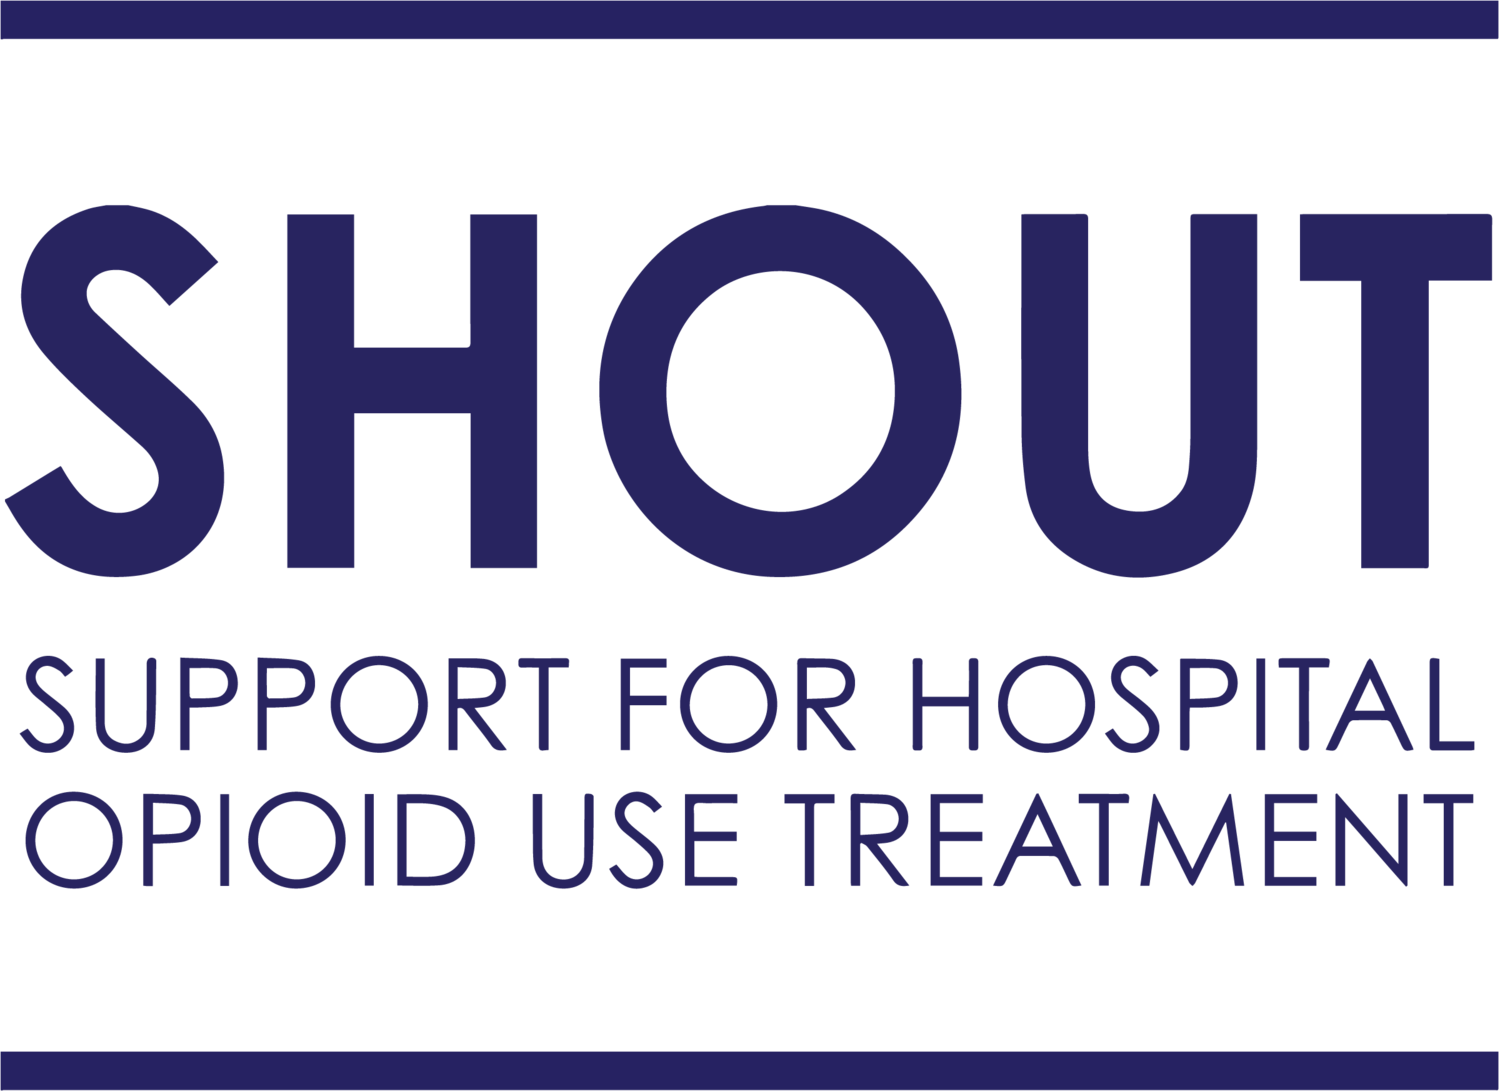 Support for Hospital Opioid Use Treatment